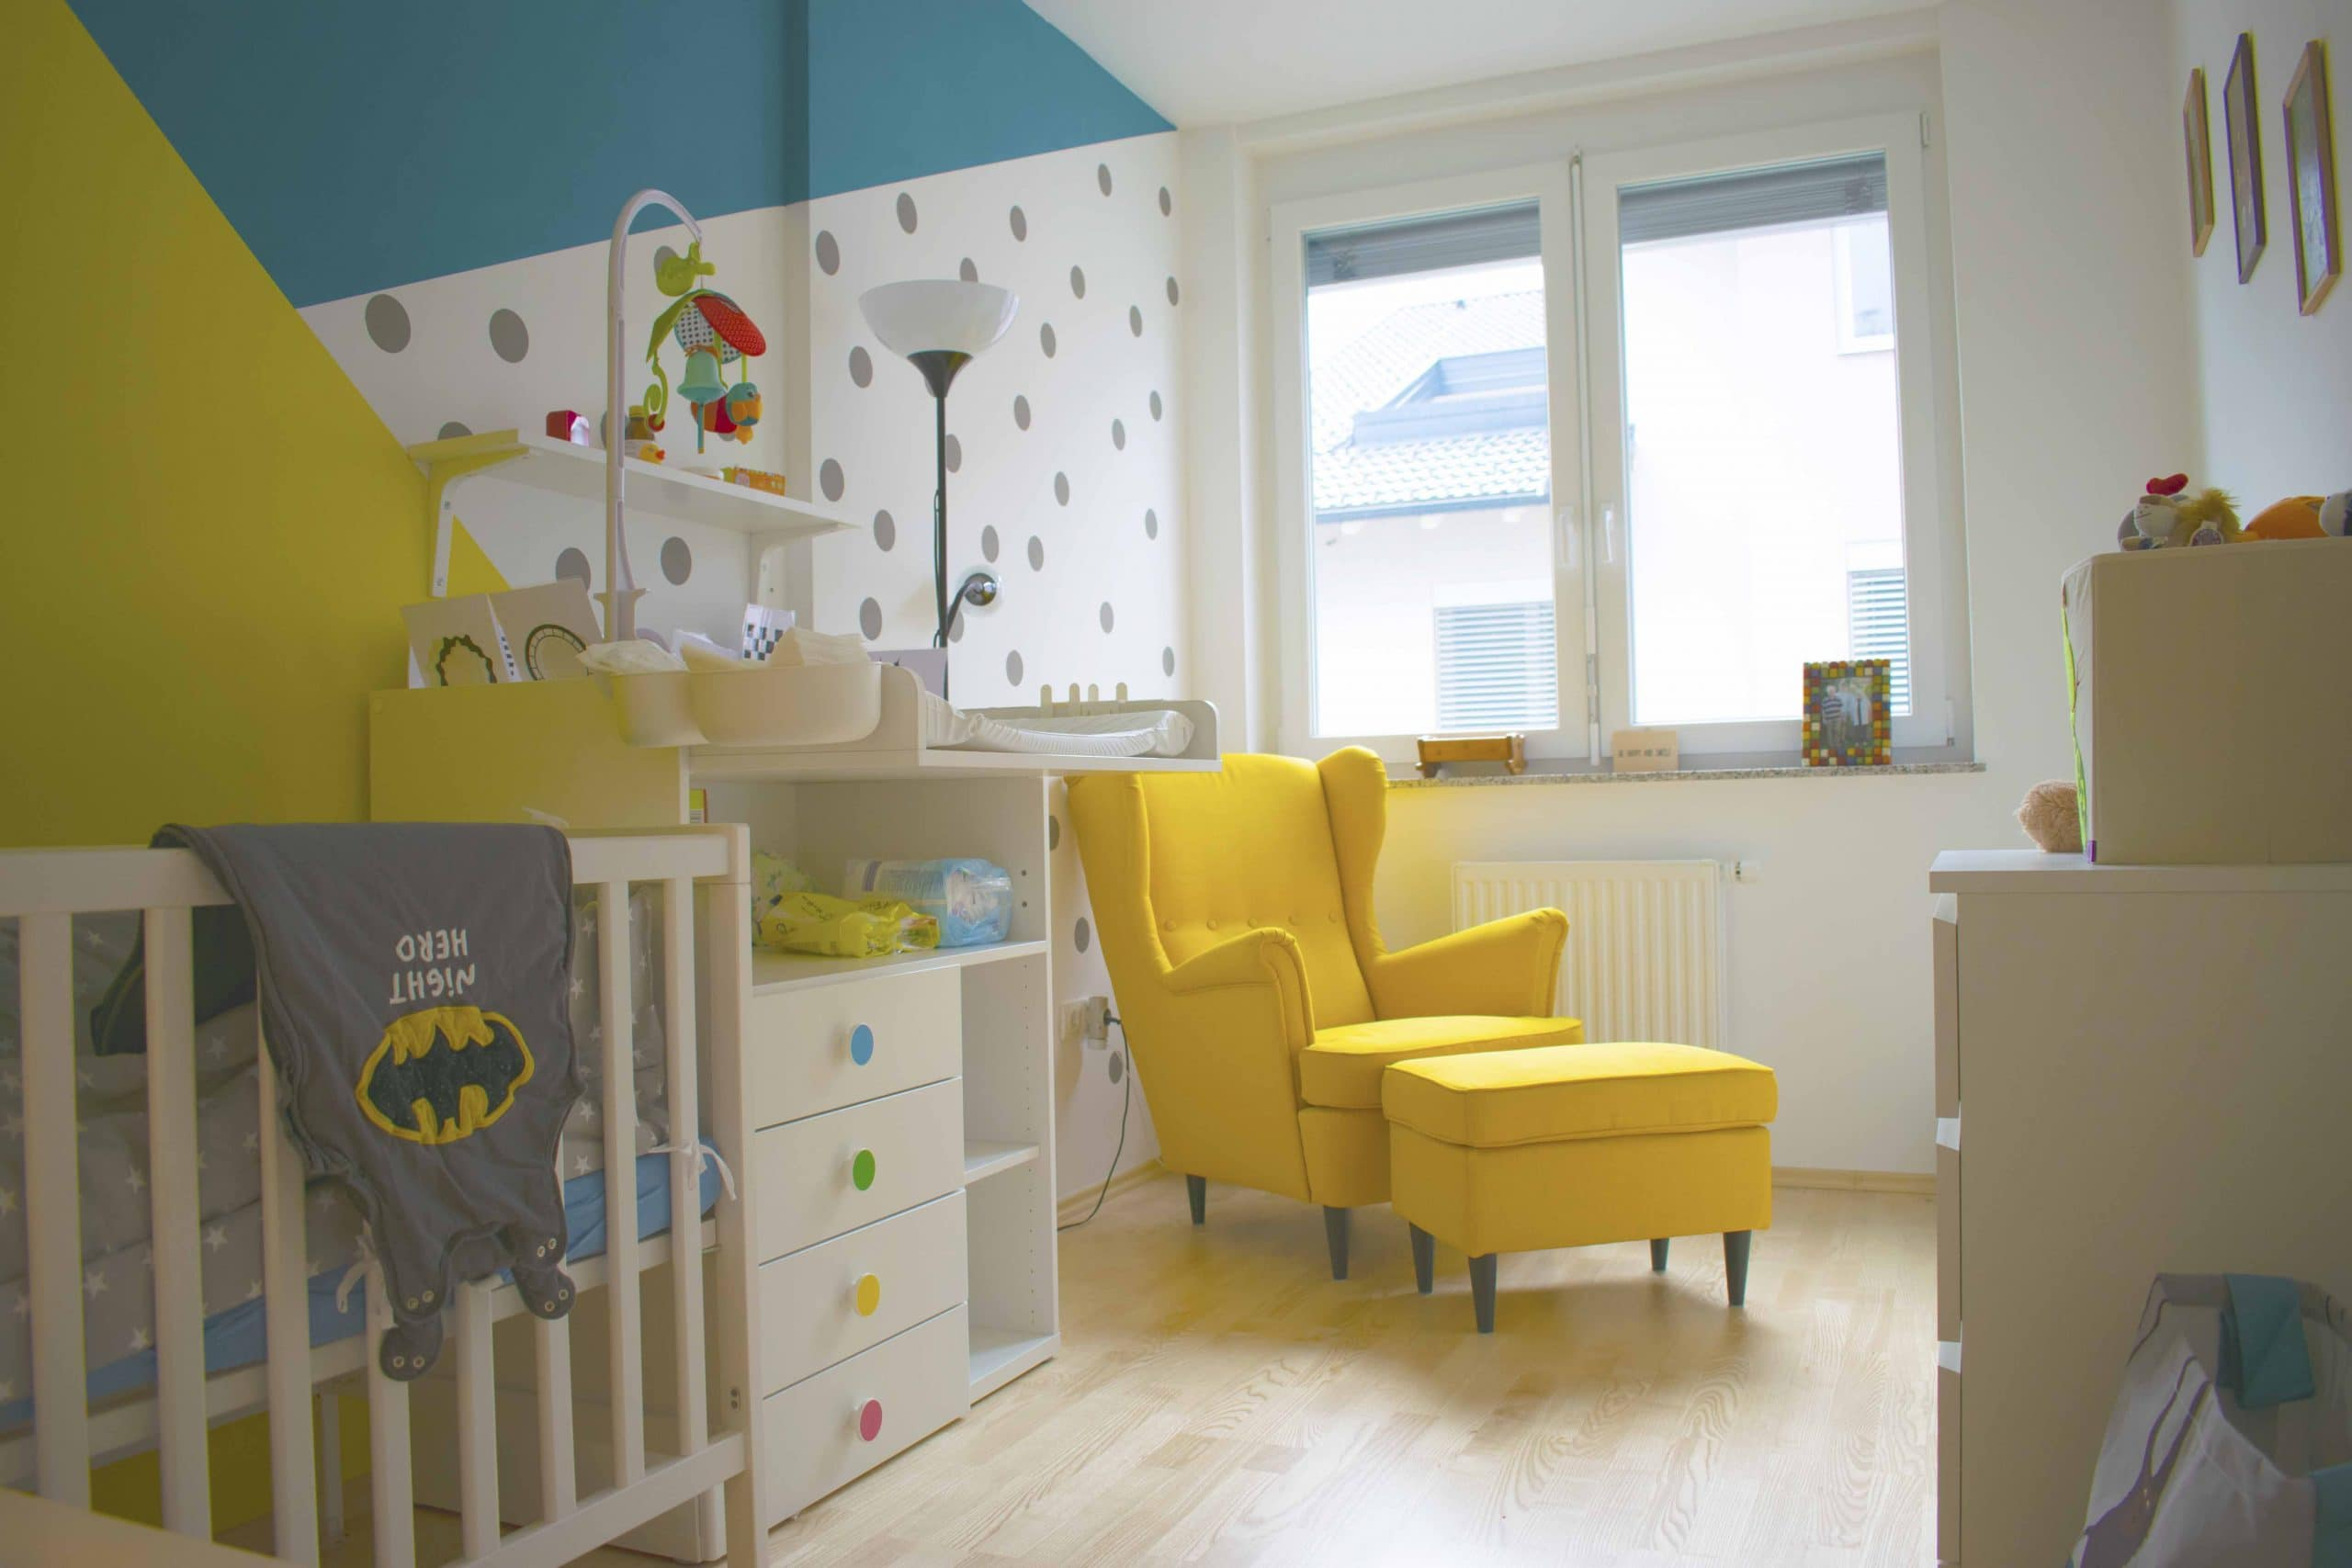 Nursery design front view